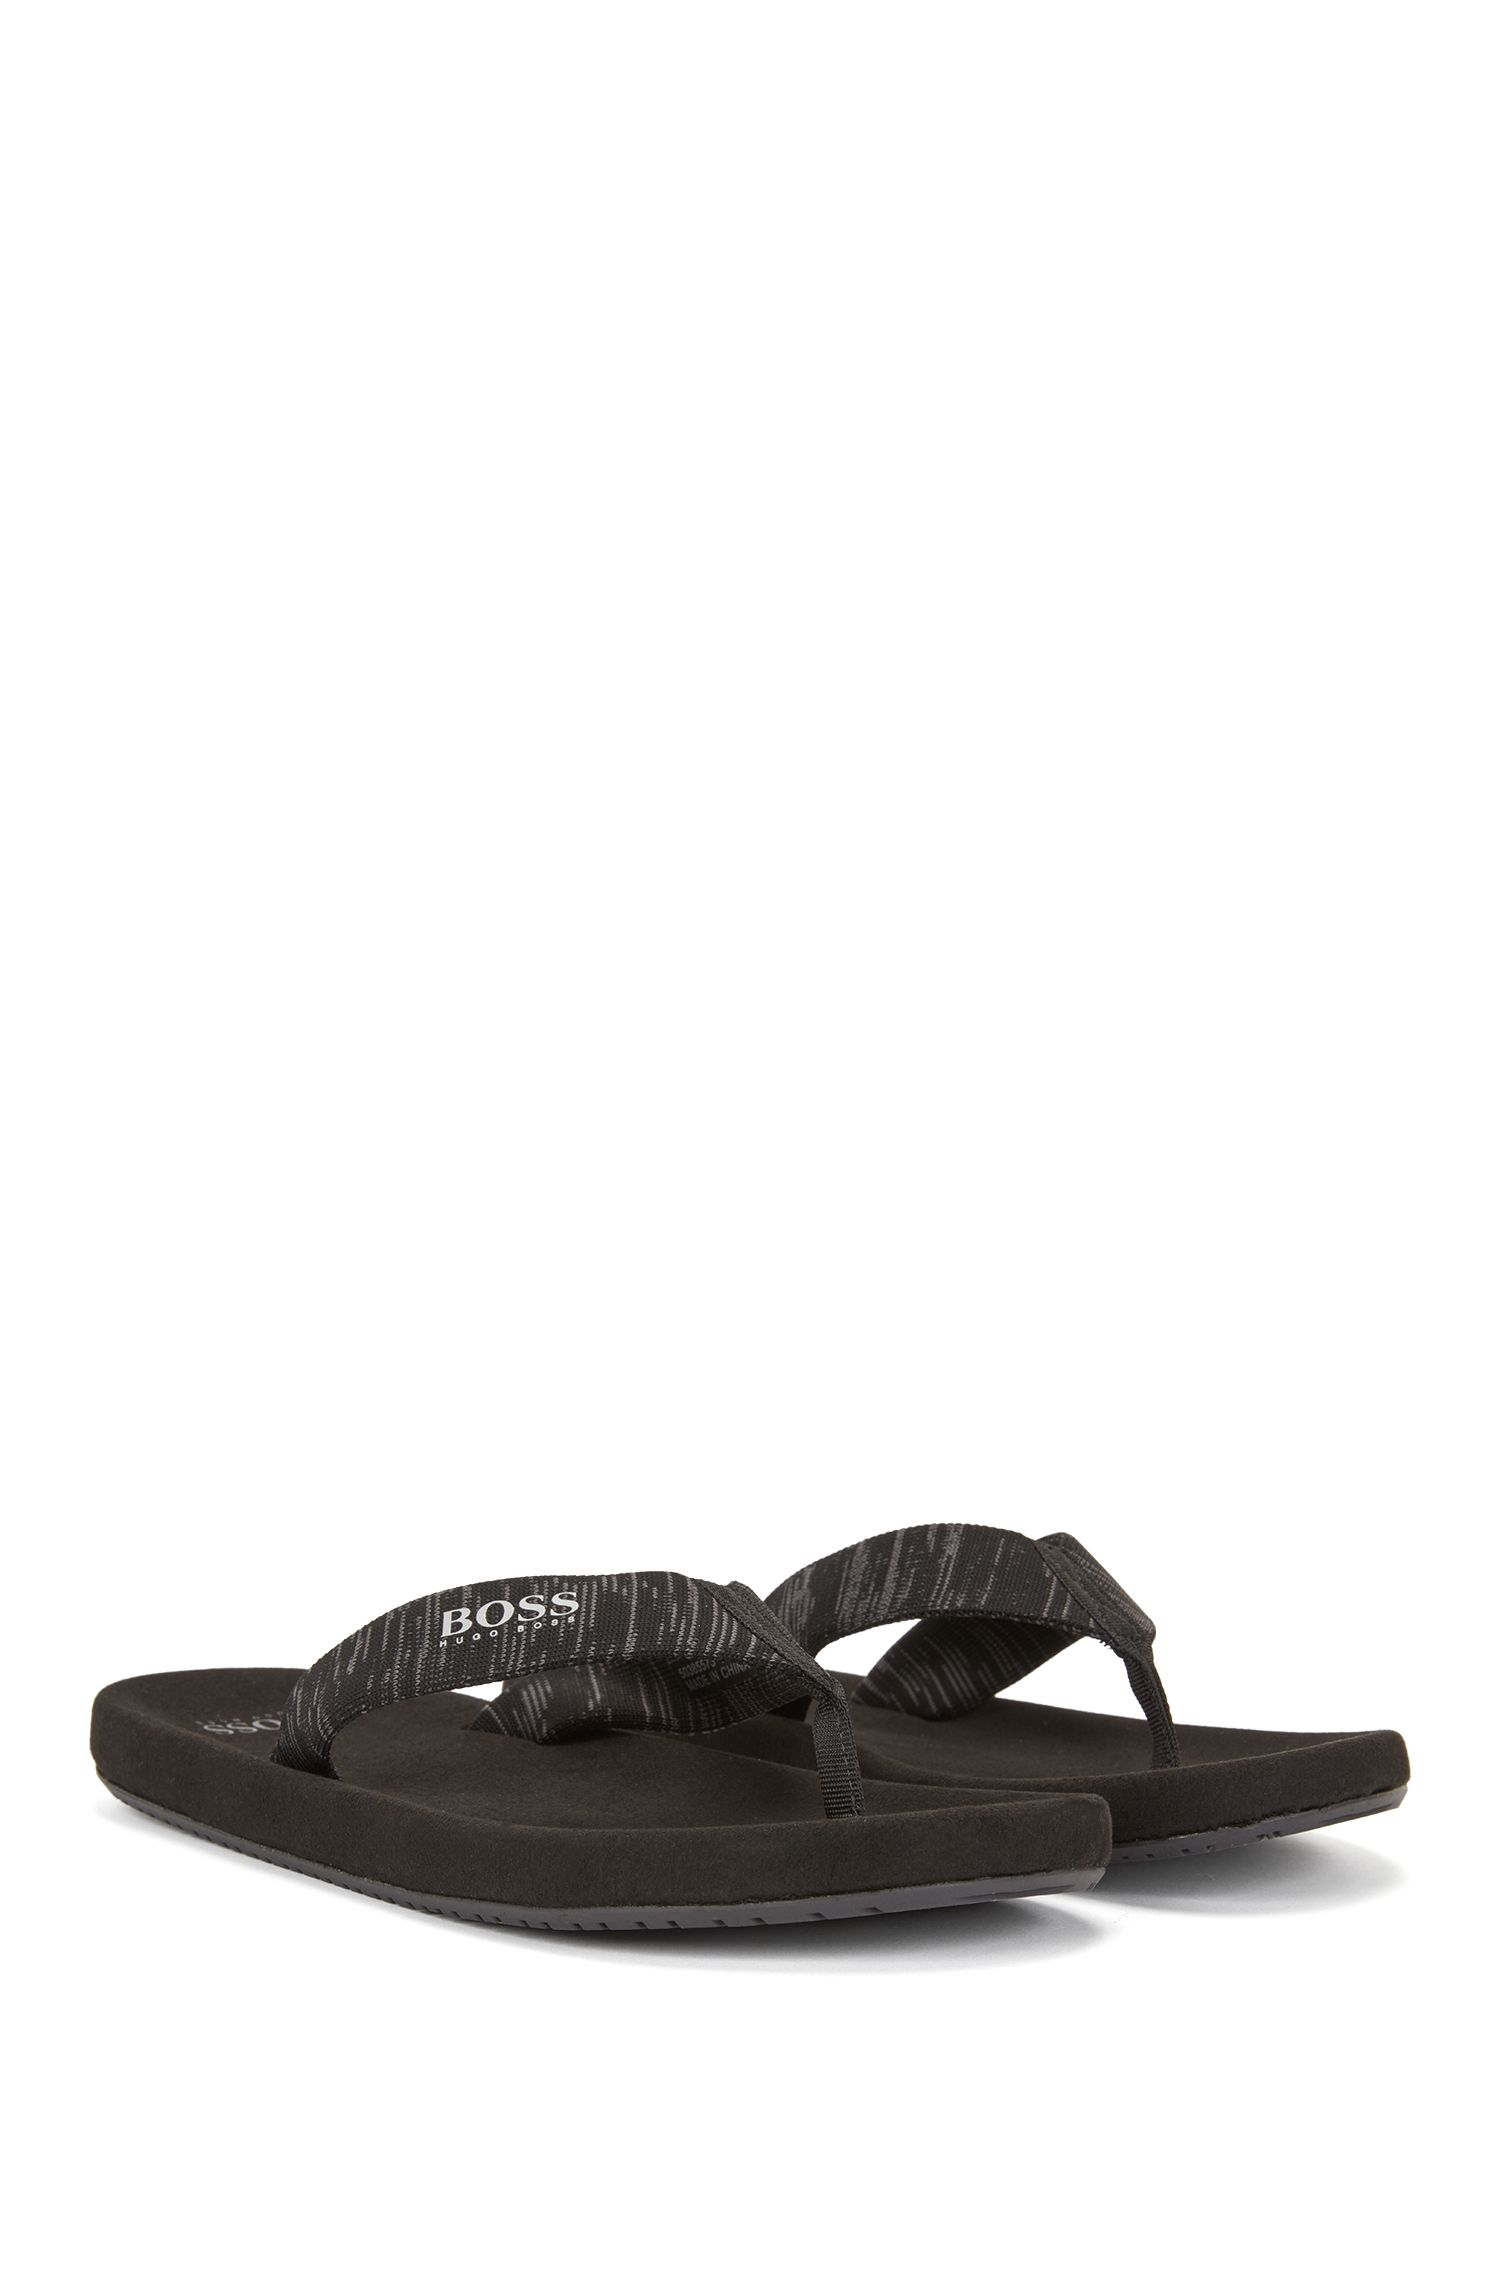 Toe-post flip-flops with knitted jacquard straps